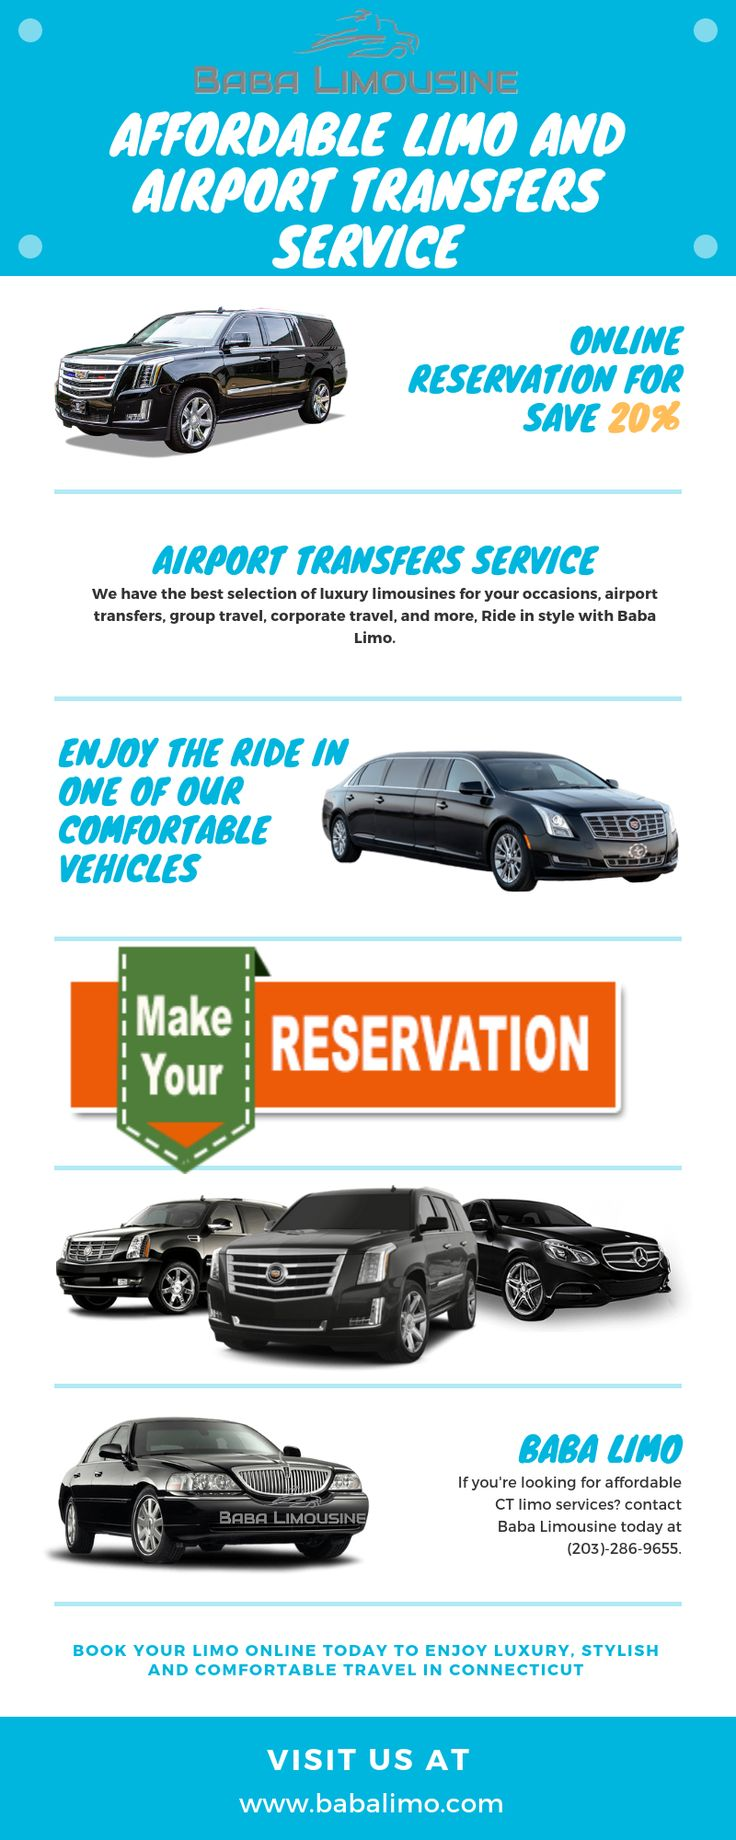 Affordable Limo and Airport Transfers Service in Connecticut